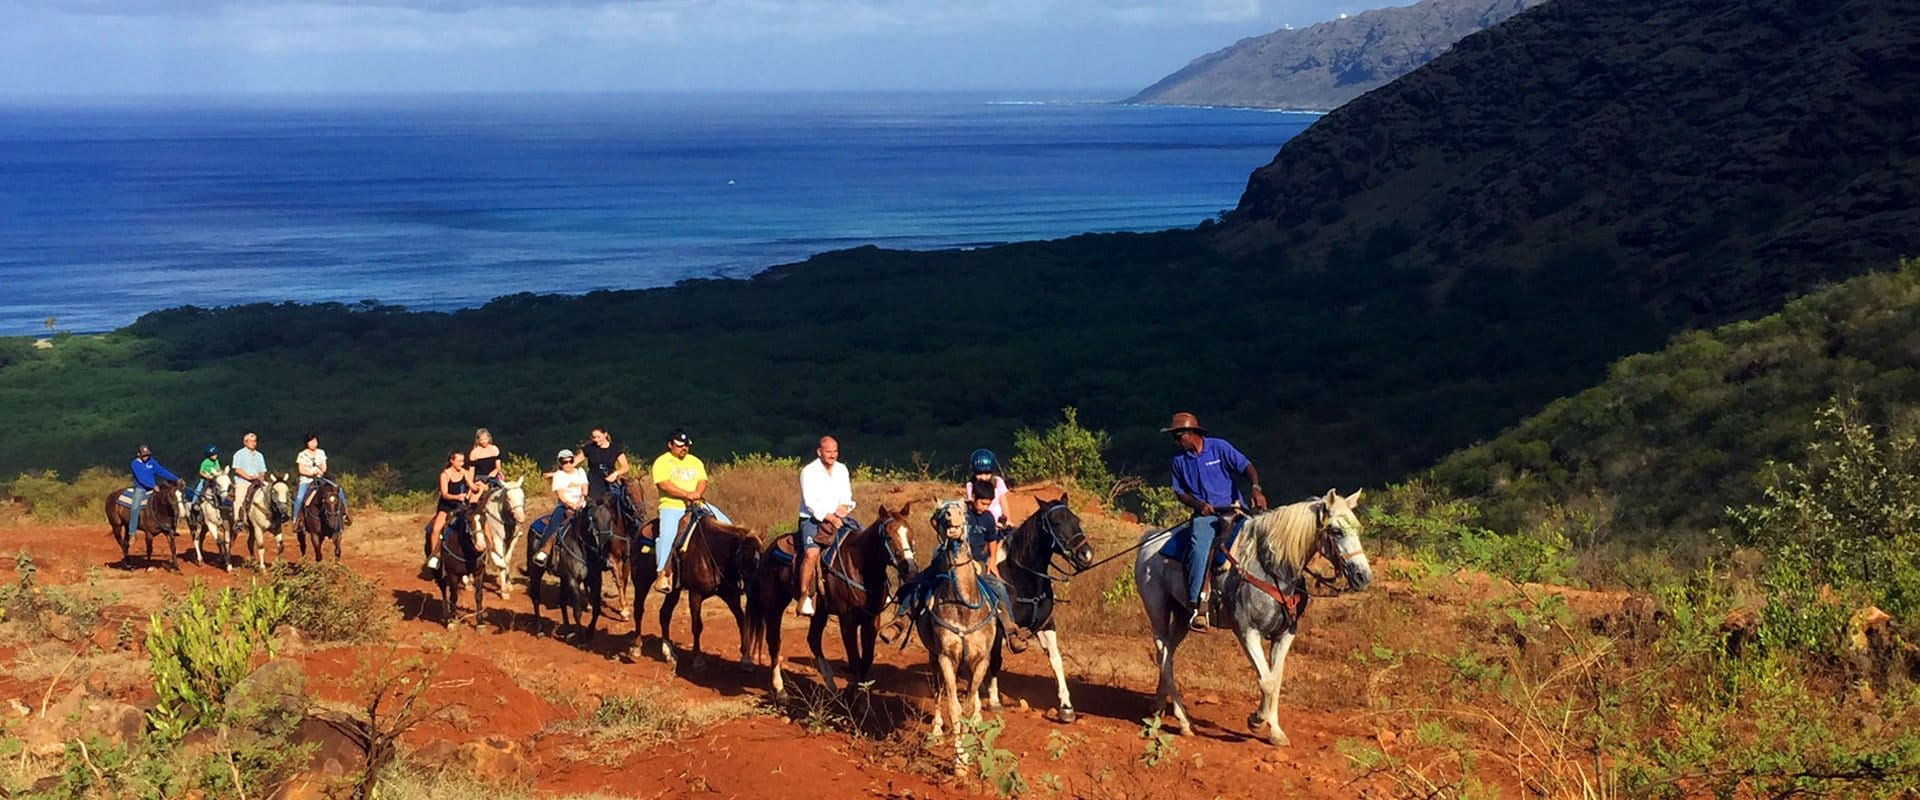 Horseback along the spectacular Mountain Range